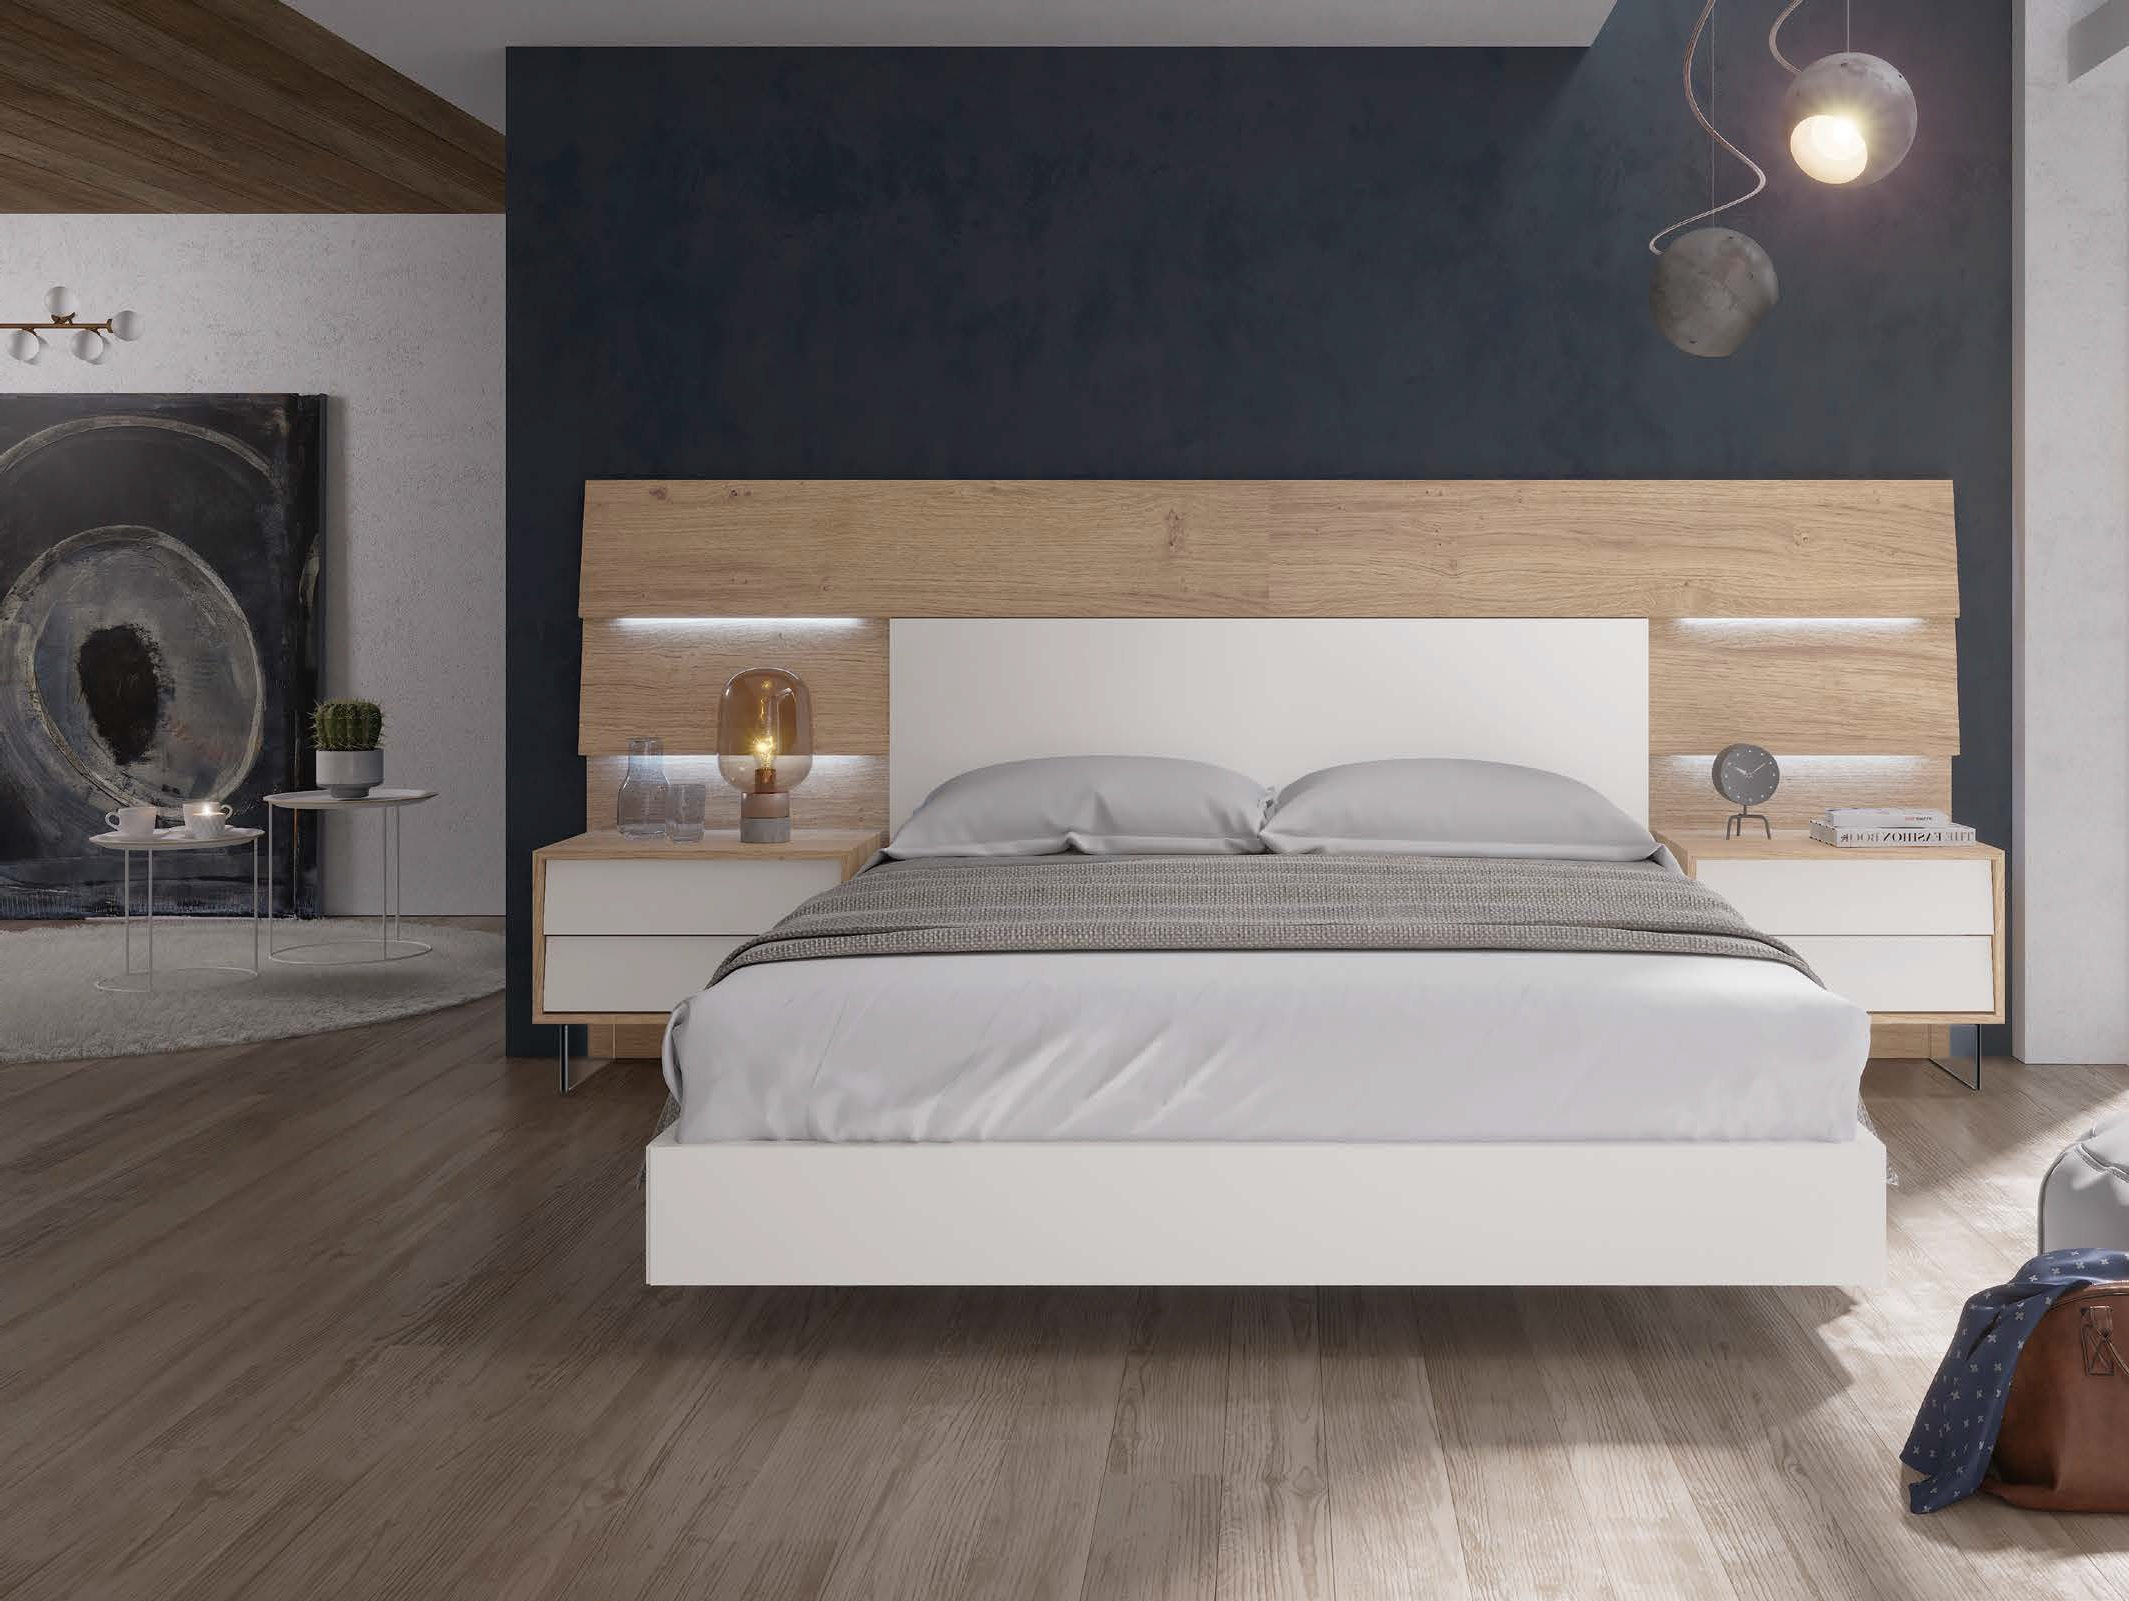 moderno-1-YOU-AND-ME-muebles-paco-caballero-633-5c9cfcdcbe5df